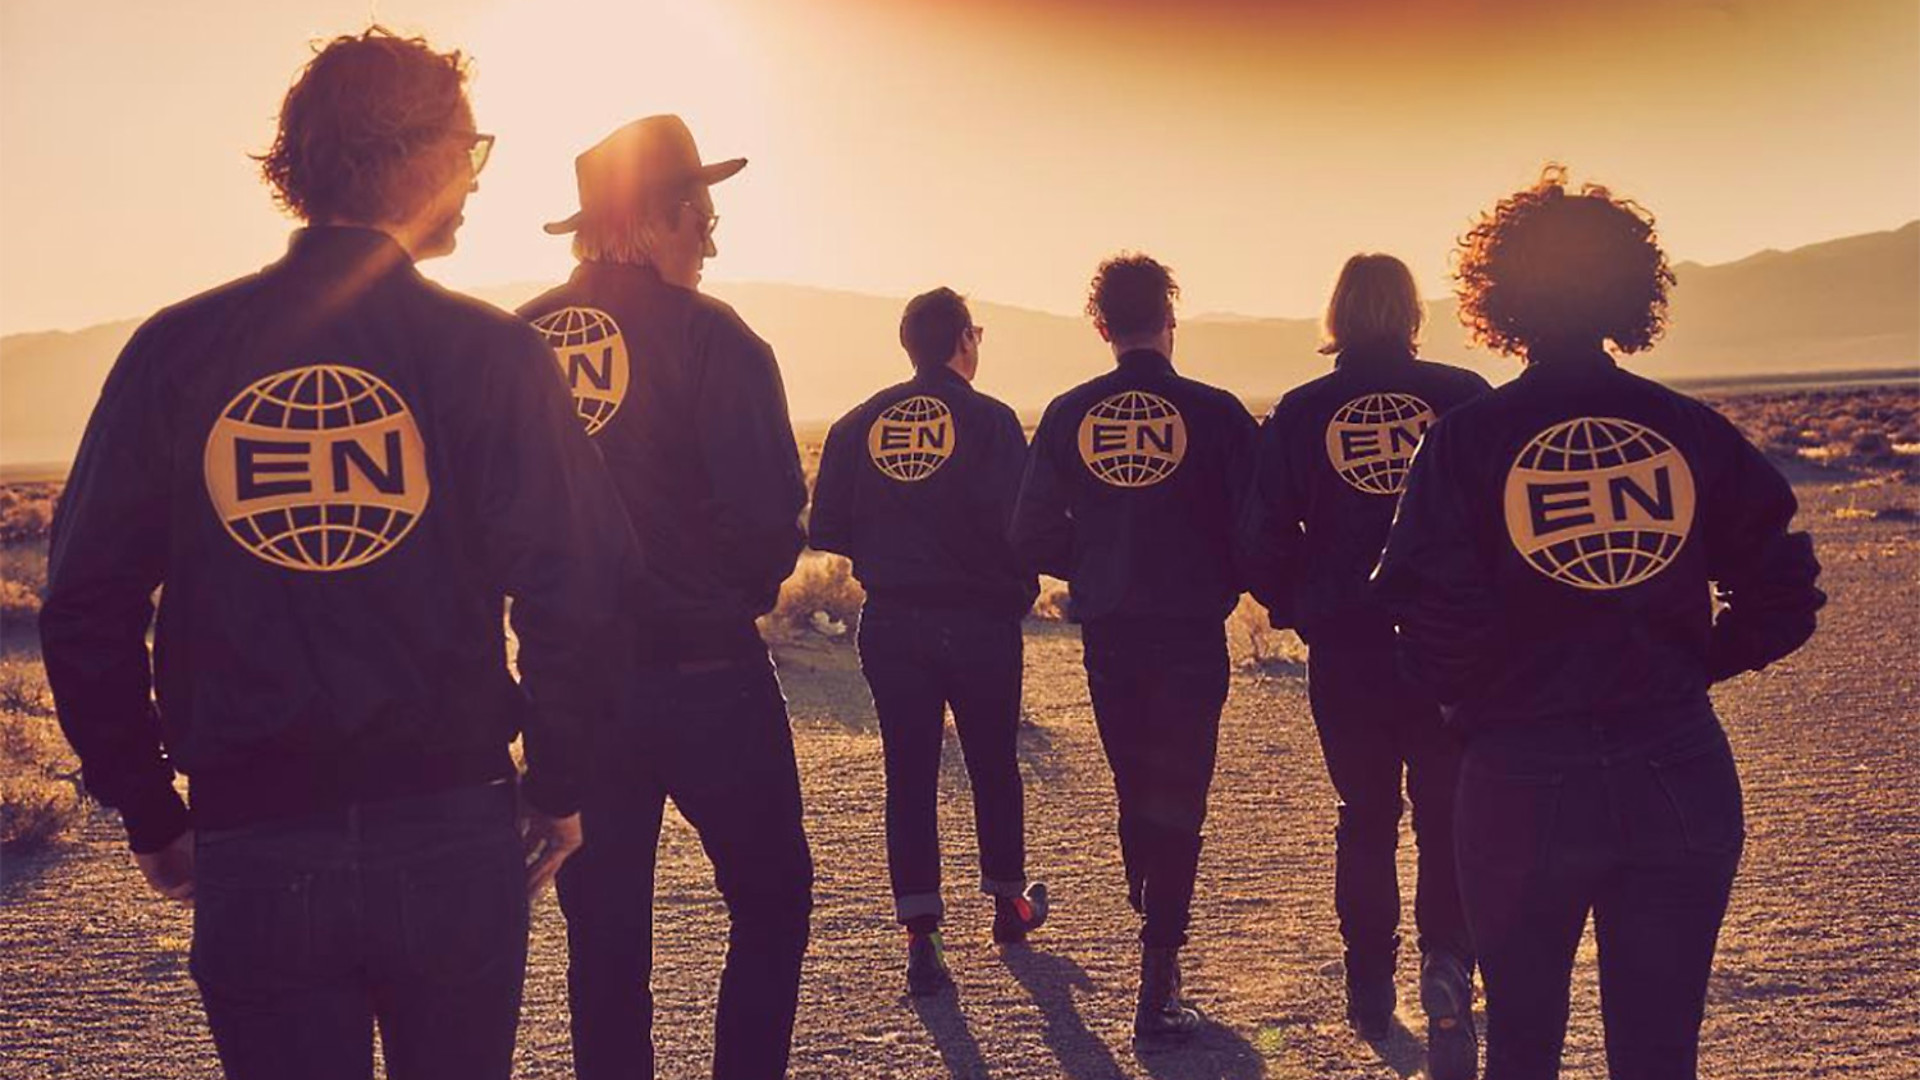 Arcade Fire And The Broken Promise Of A Danceable Aesthetic